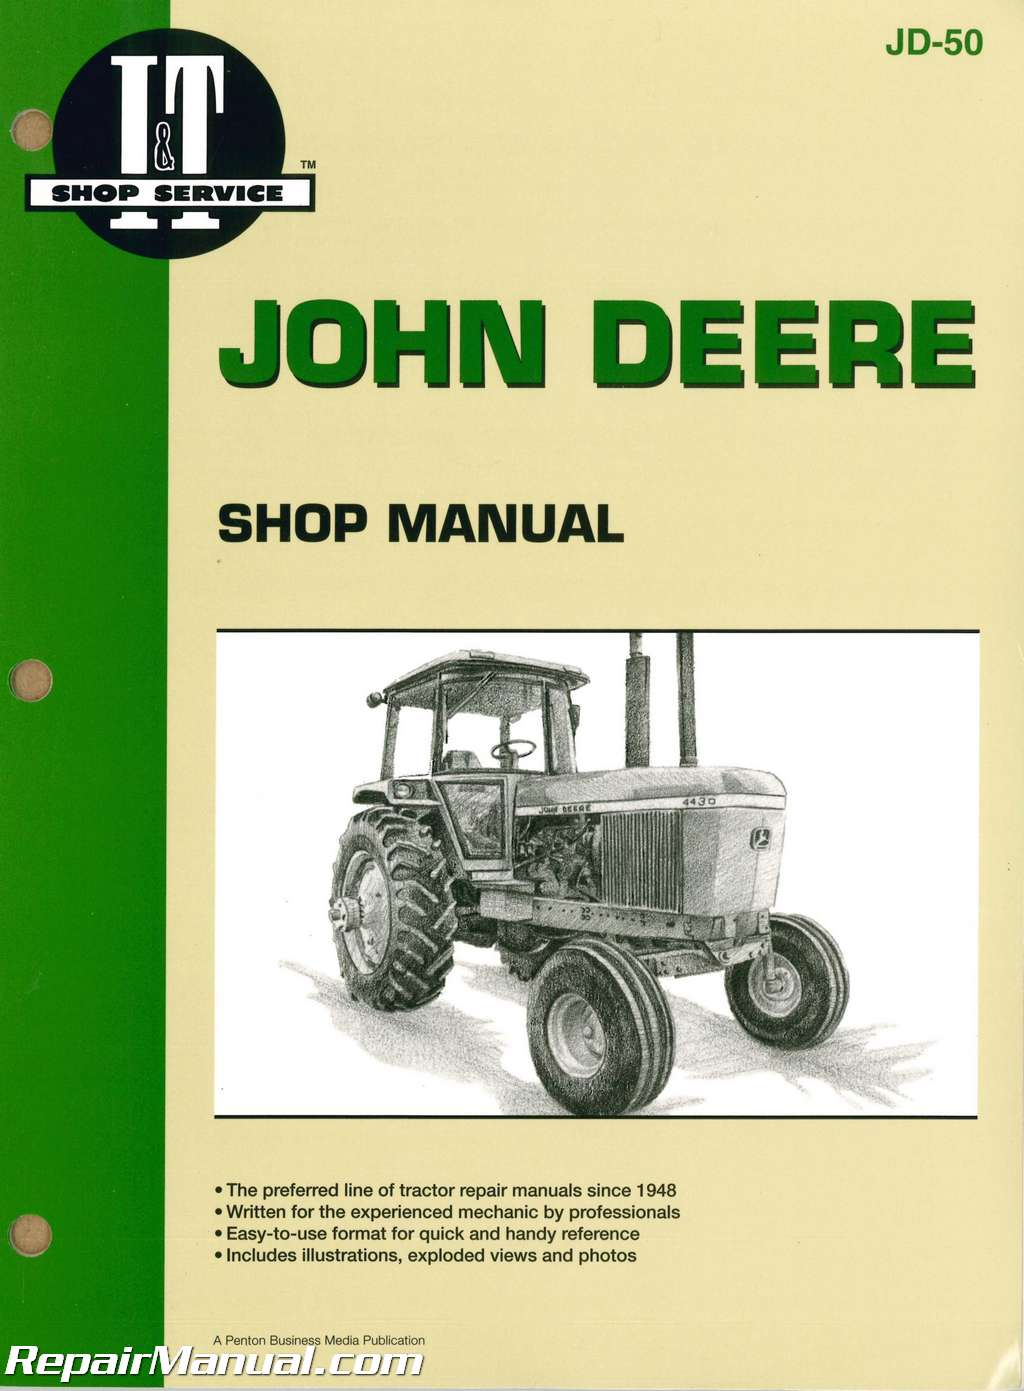 John Deere 4030 4230 4430 4630 Tractor Workshop Manual on subaru wire diagram, saab wire diagram, international wire diagram, suzuki wire diagram, husqvarna wire diagram, massey ferguson wire diagram, toyota wire diagram, ford wire diagram, toro wire diagram, yamaha wire diagram, sears wire diagram, bmw wire diagram, dixie chopper wire diagram, chrysler wire diagram, gmc wire diagram, paccar wire diagram, cat wire diagram, genie wire diagram, bobcat wire diagram, sterling wire diagram,